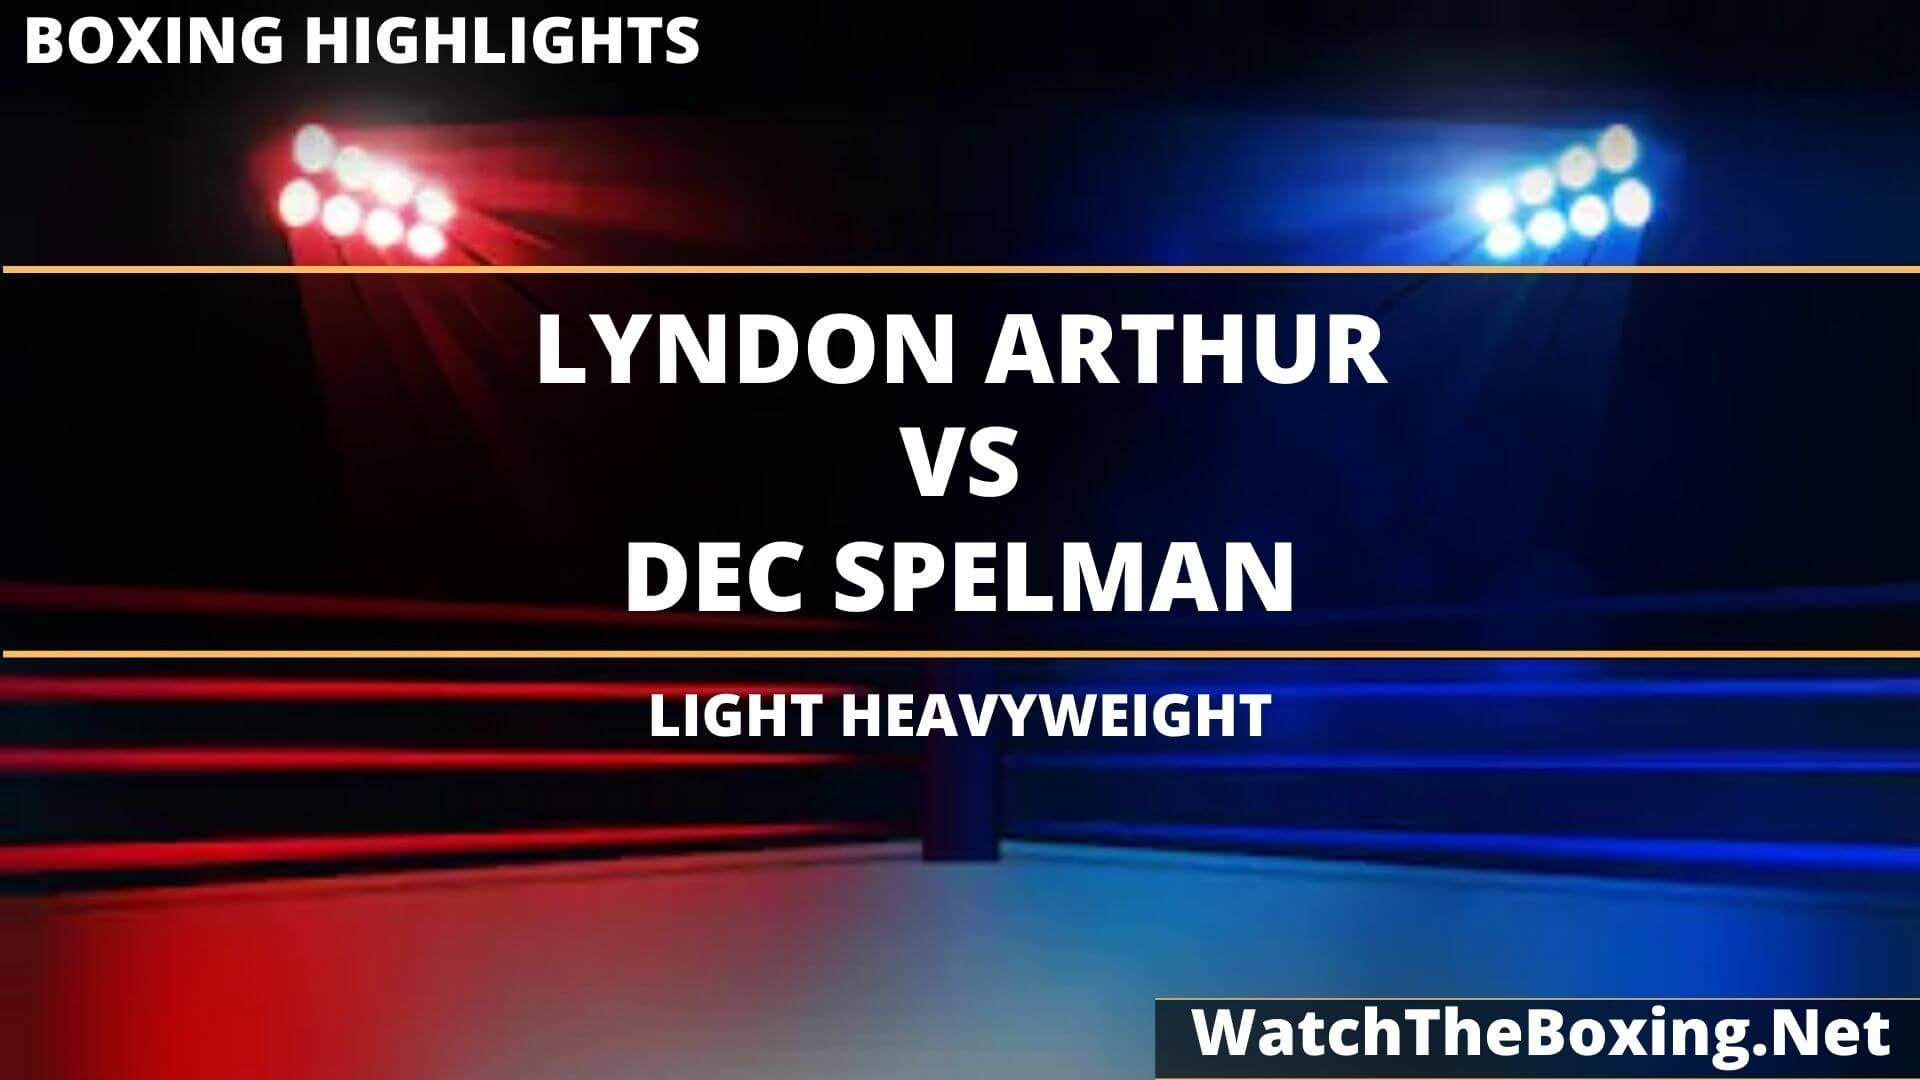 Lyndon Arthur Vs Dec Spelman Highlights 2020 Light Heavyweight